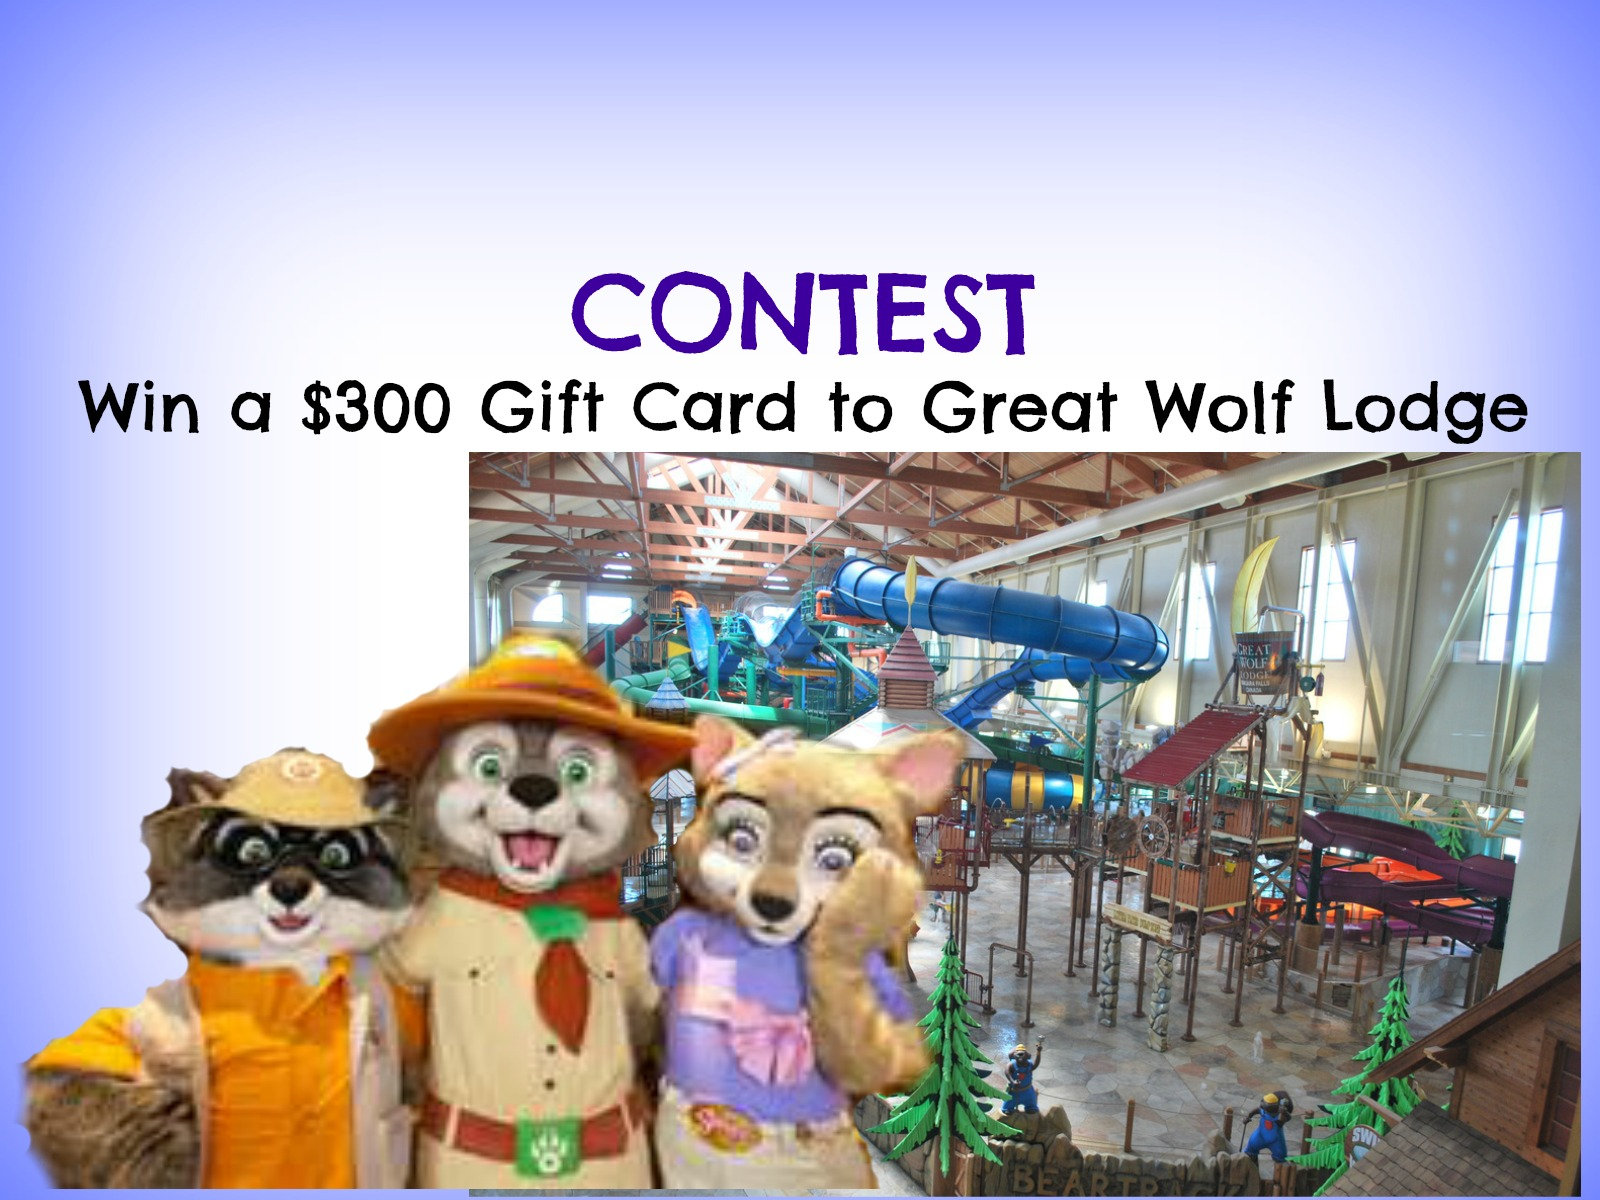 Contest: Win a $300 Great Wolf Lodge Gift Card